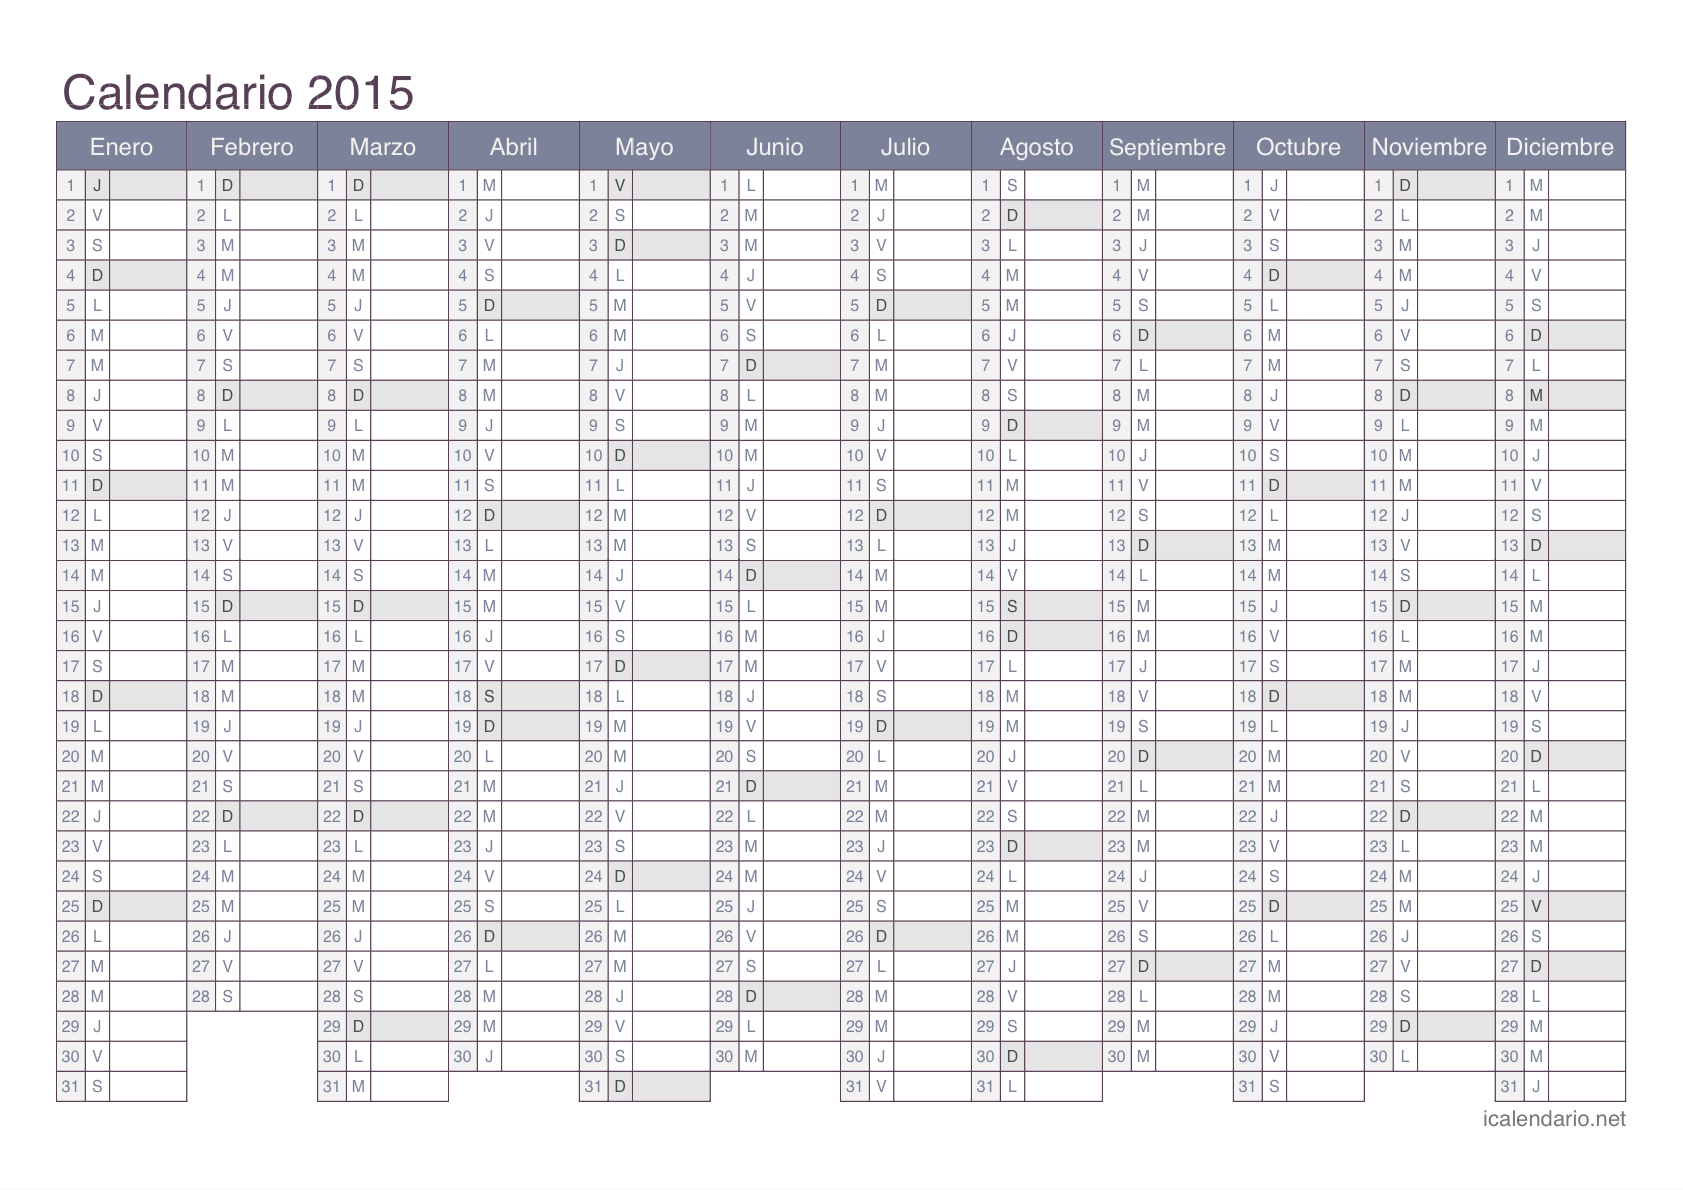 Calendario de 2015 para colocar anotaciones